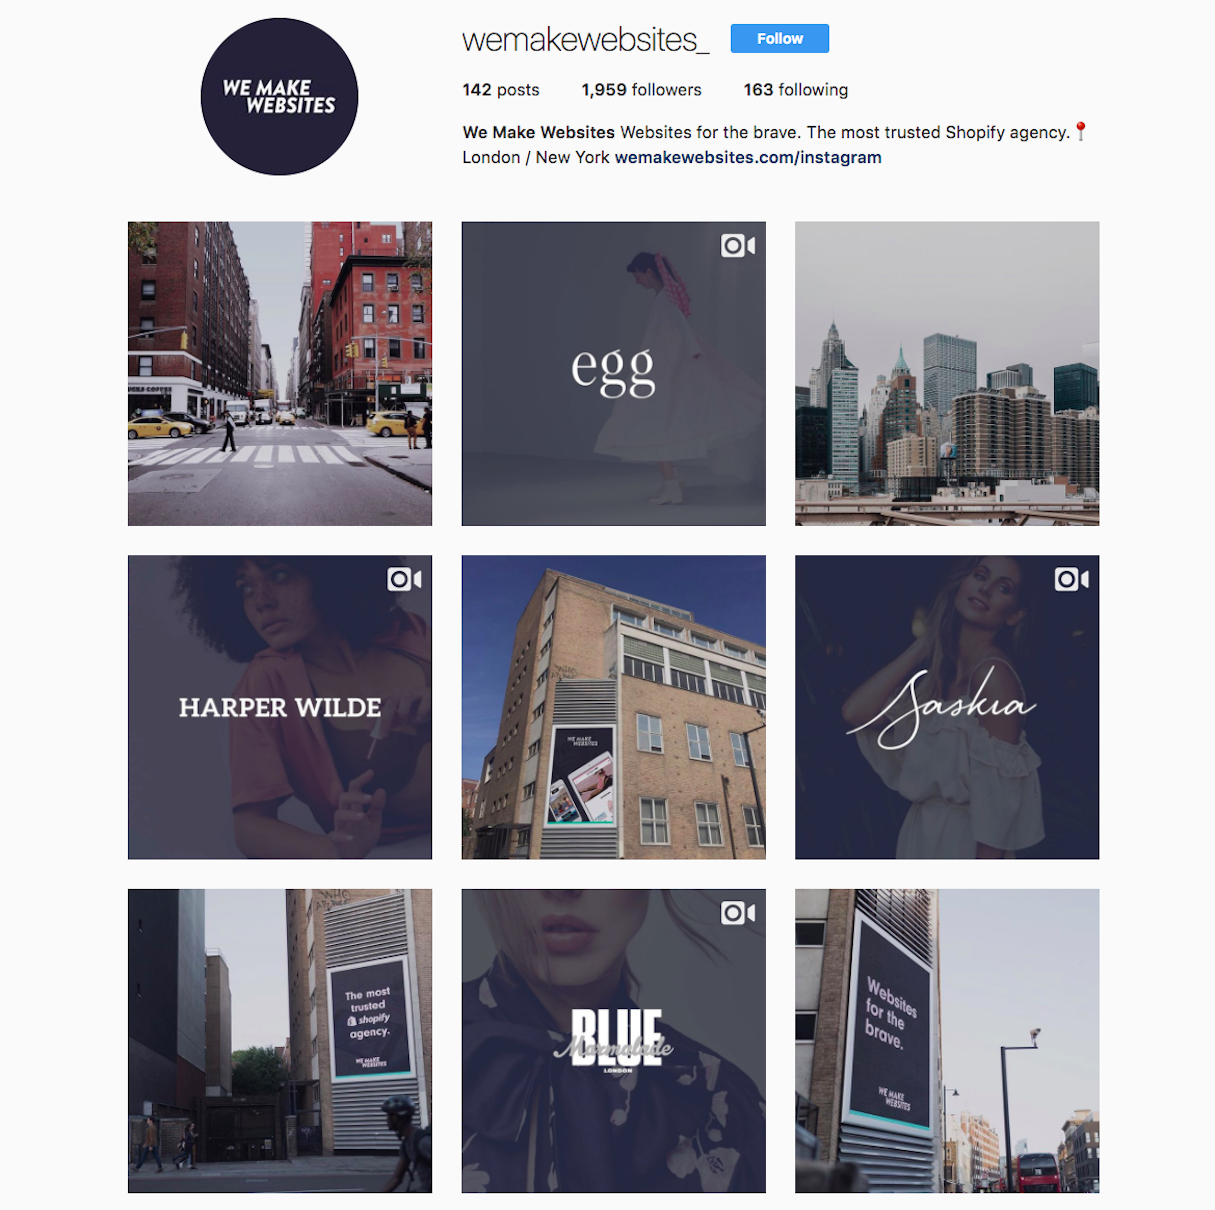 Actionable social media tips: We Make Websites Instagram